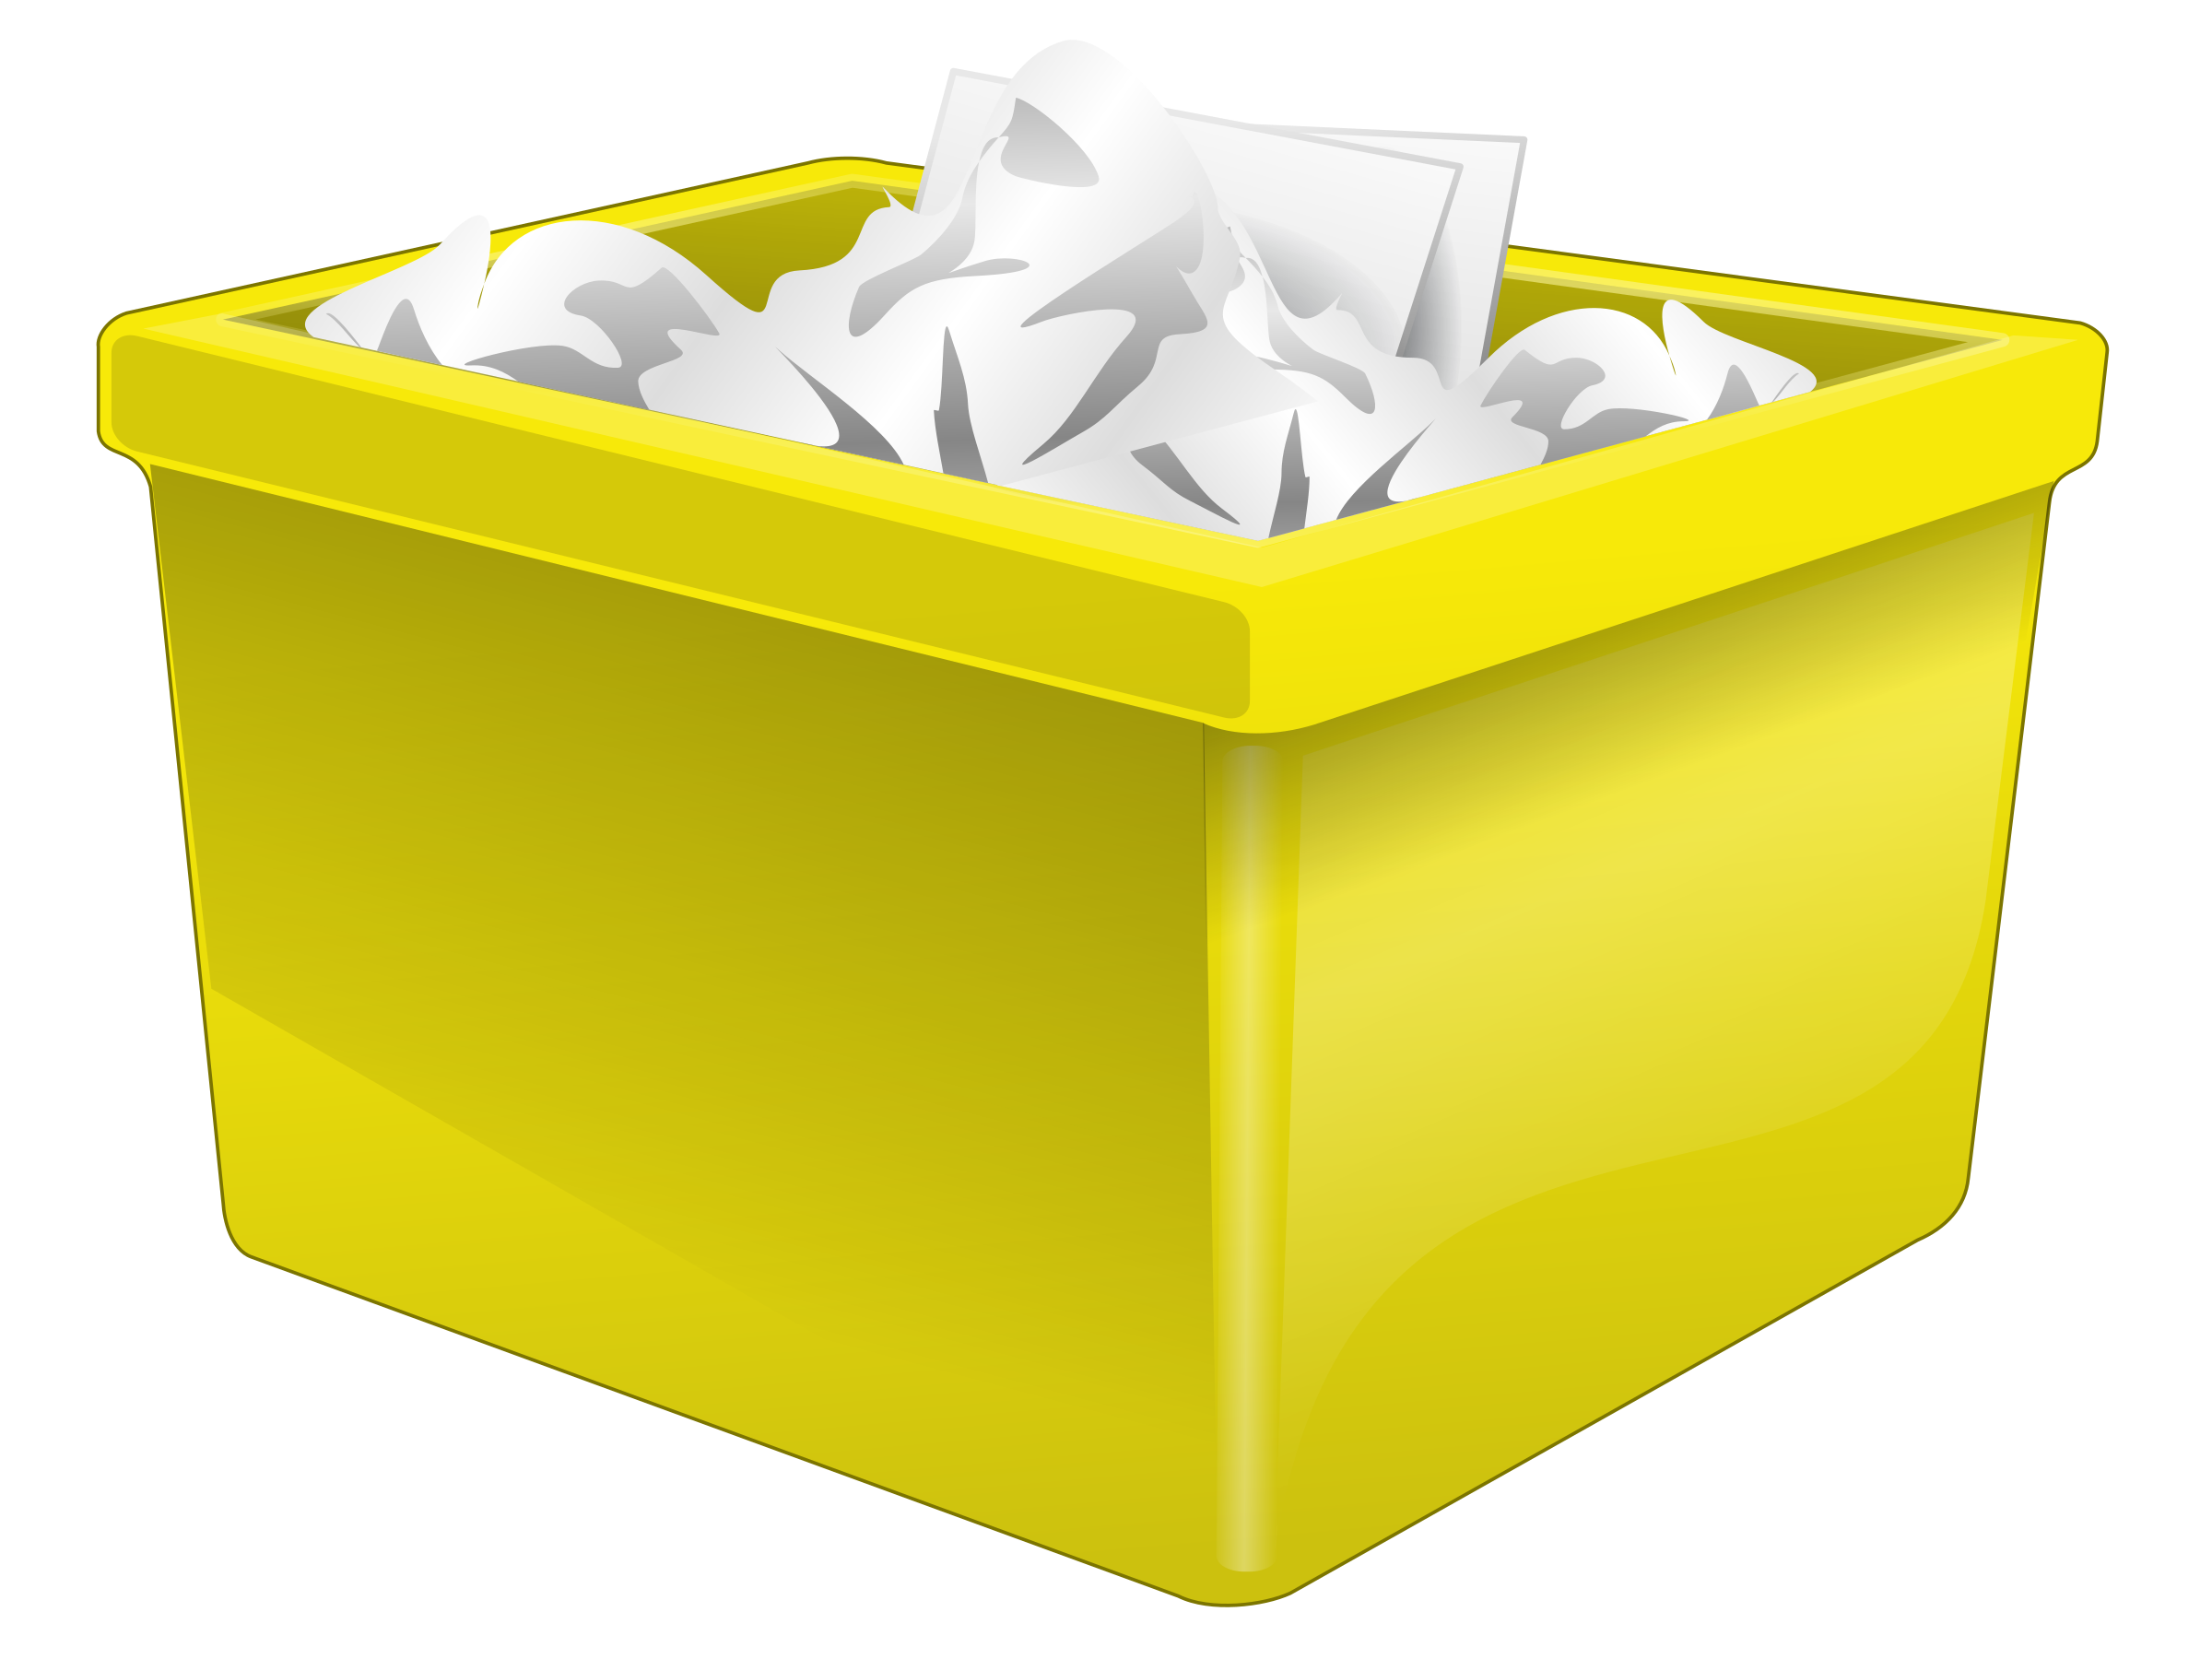 Clipart box supply. Yellow plastic filled with